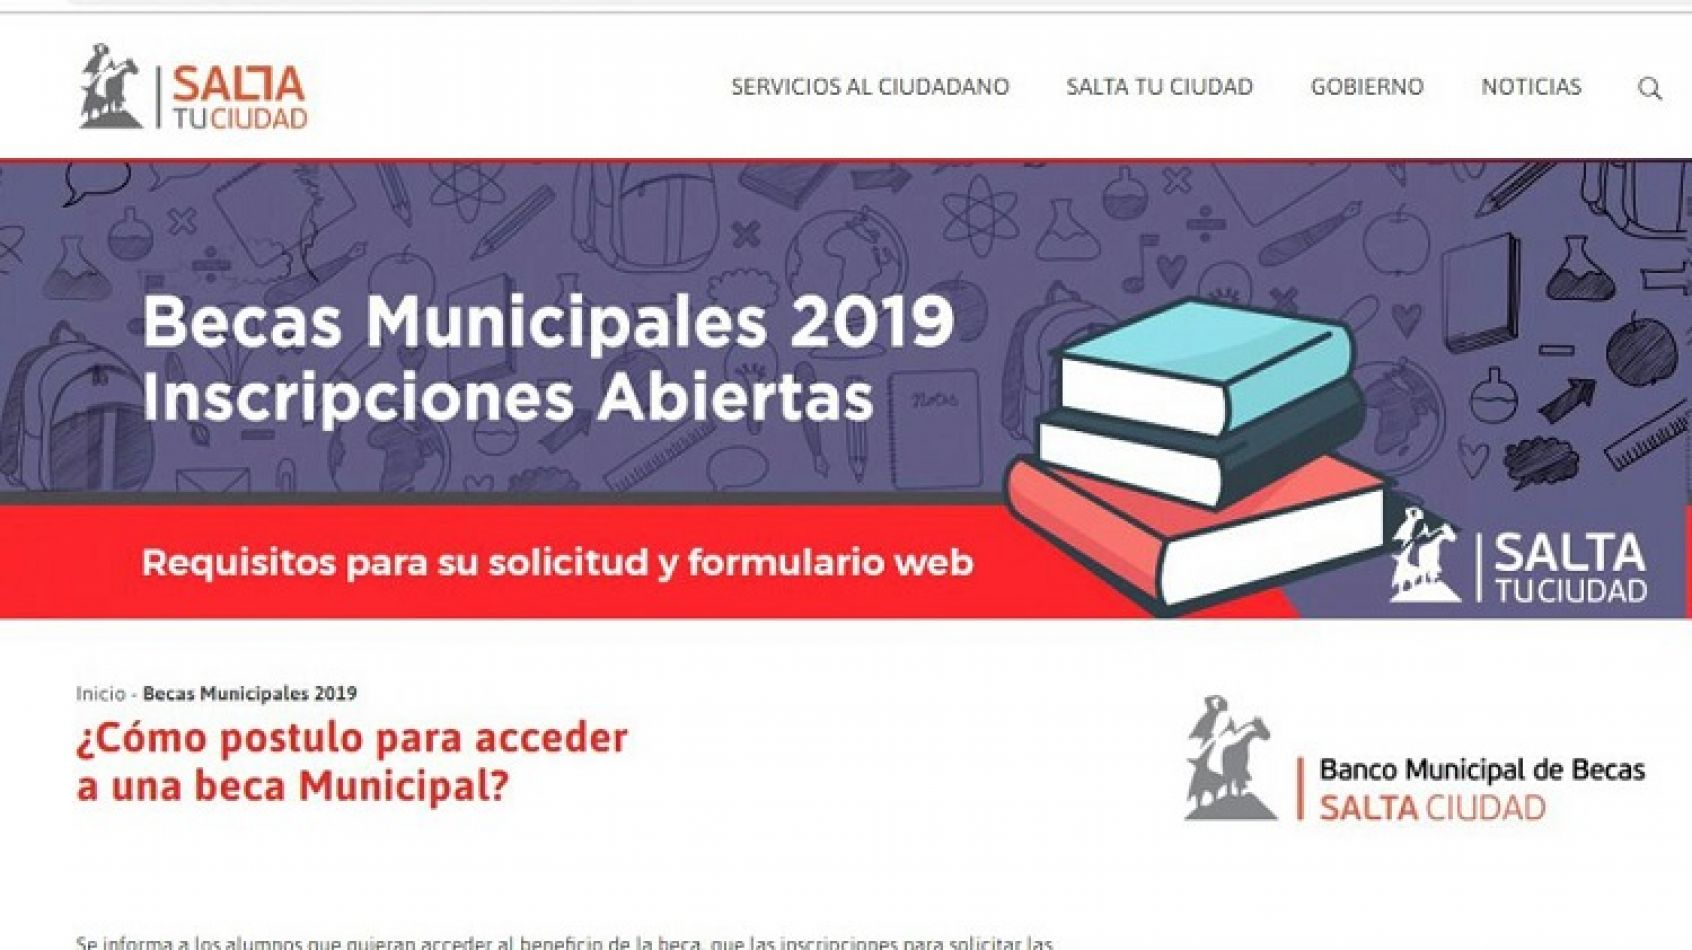 Estas son las instituciones educativas que otorgan Becas de la Municipalidad